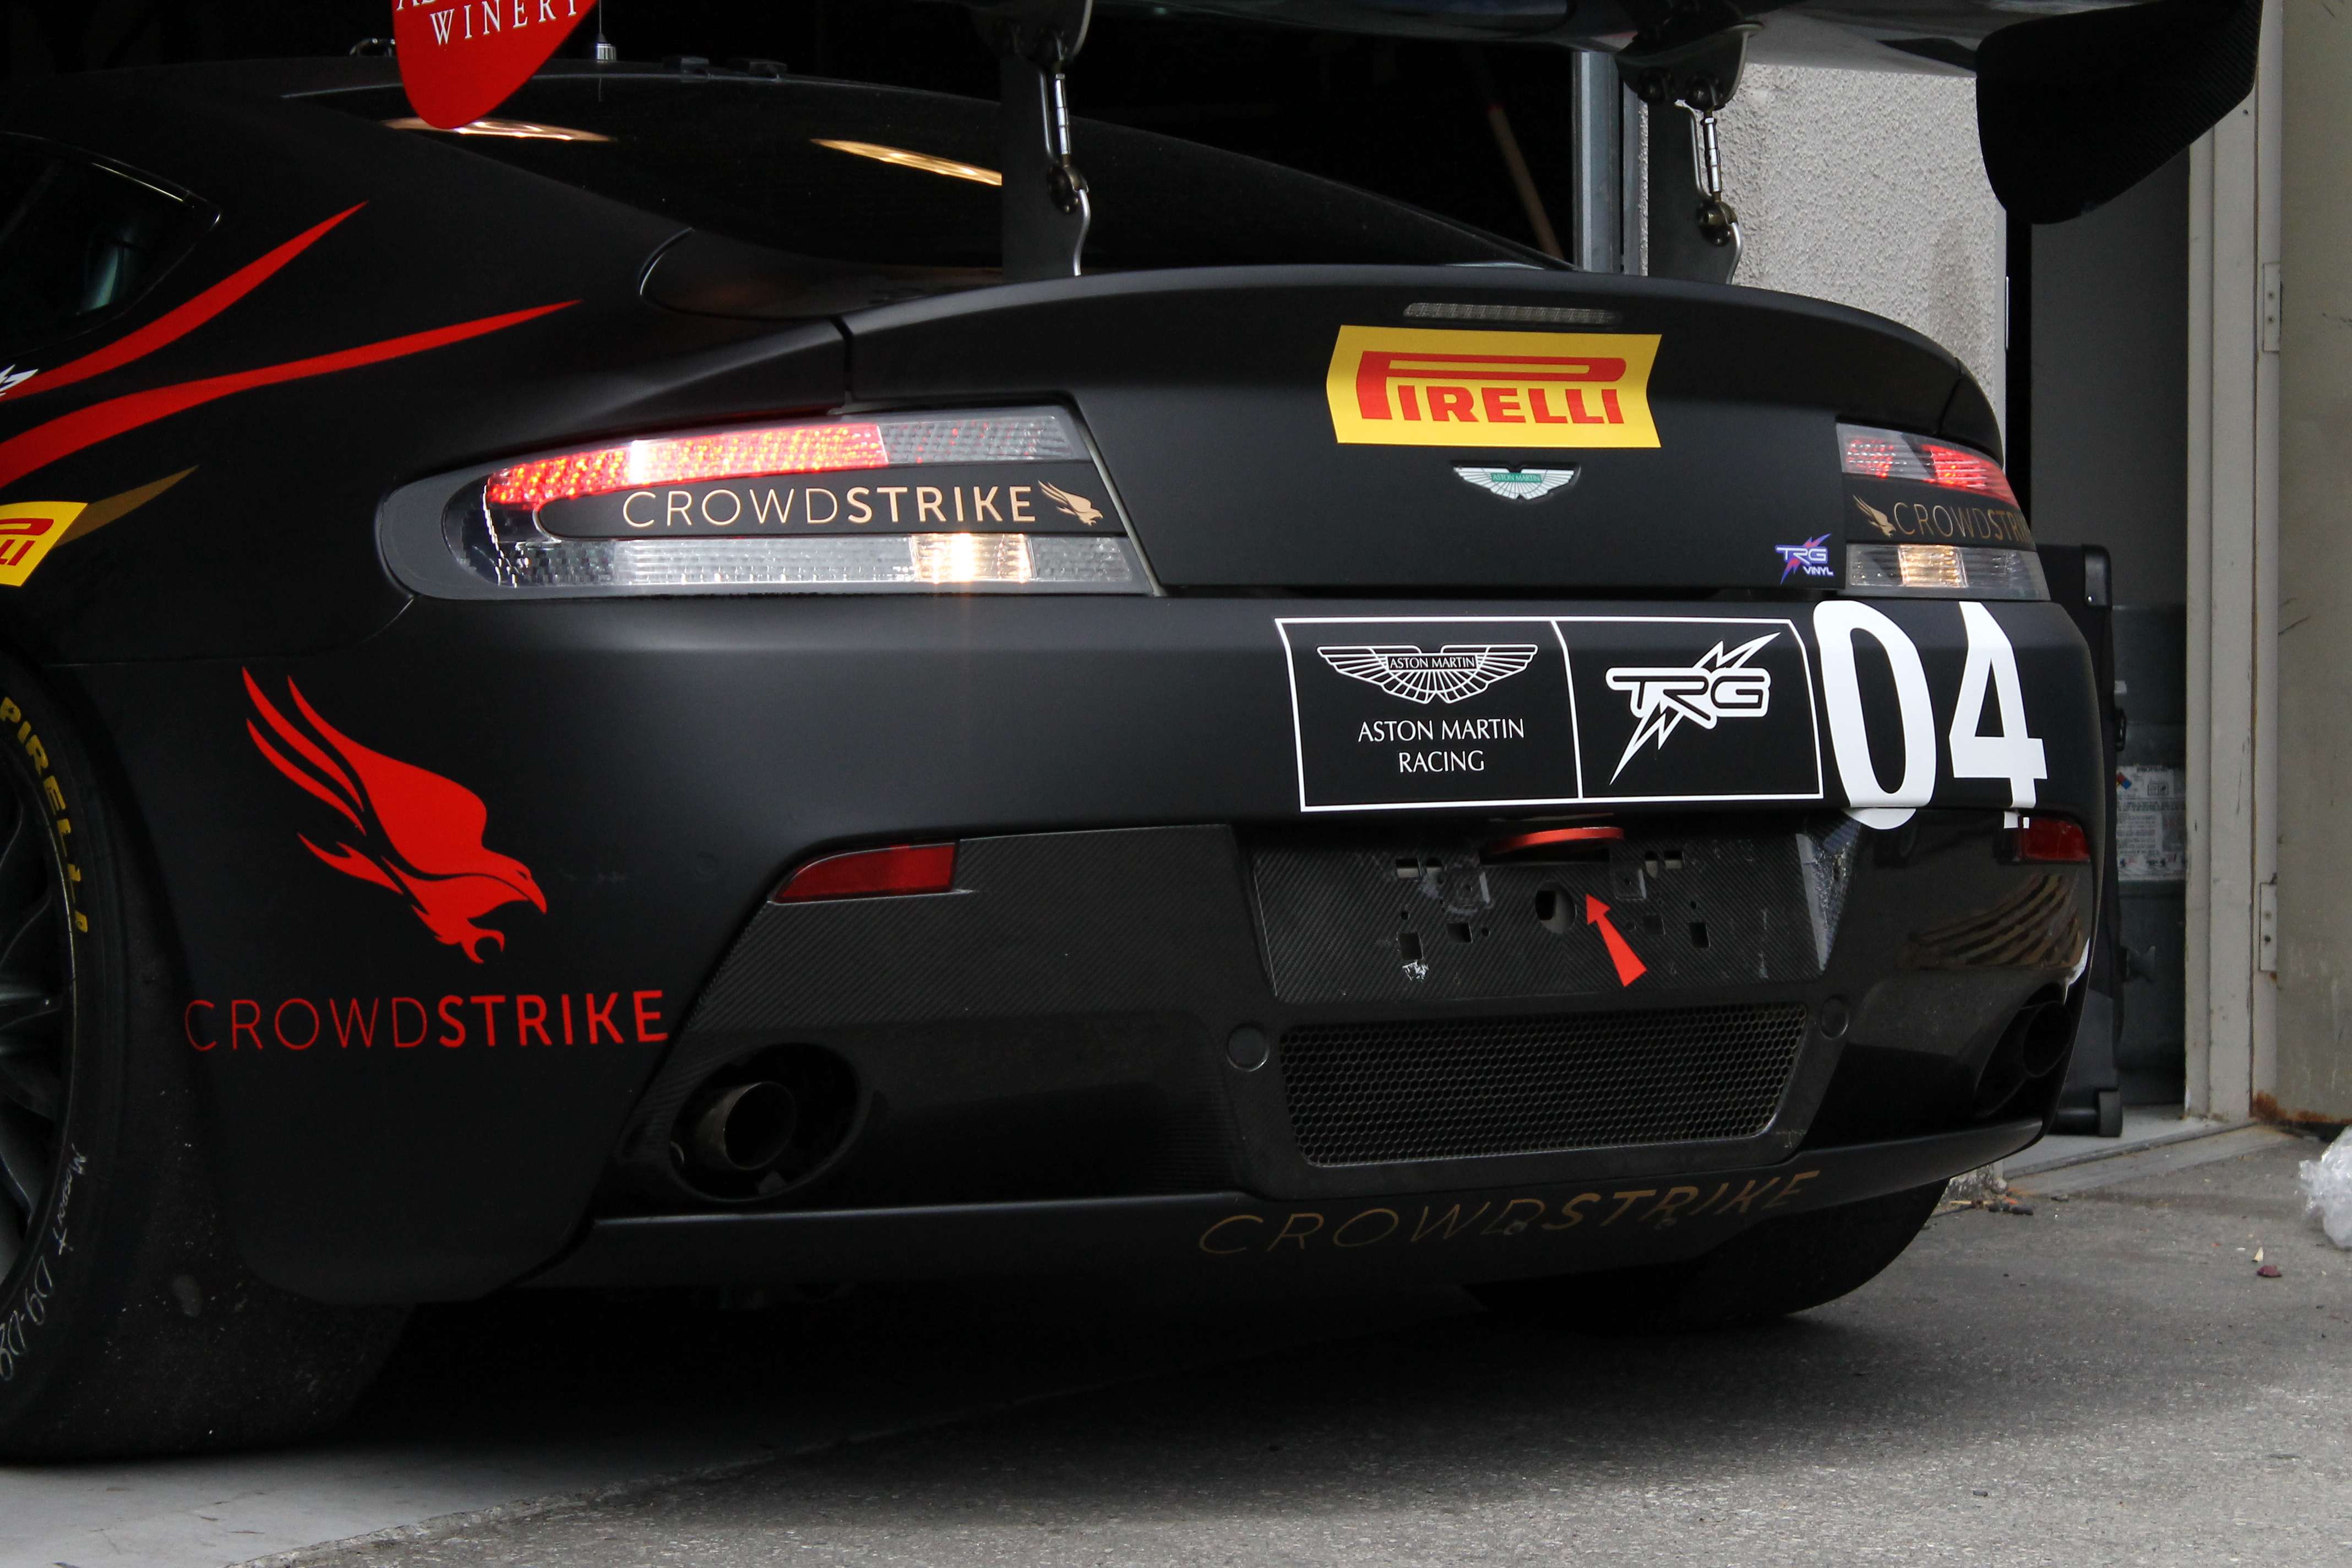 TRG-Aston Martin Racing, CrowdStrike CEO George Kurtz Partner for PWC